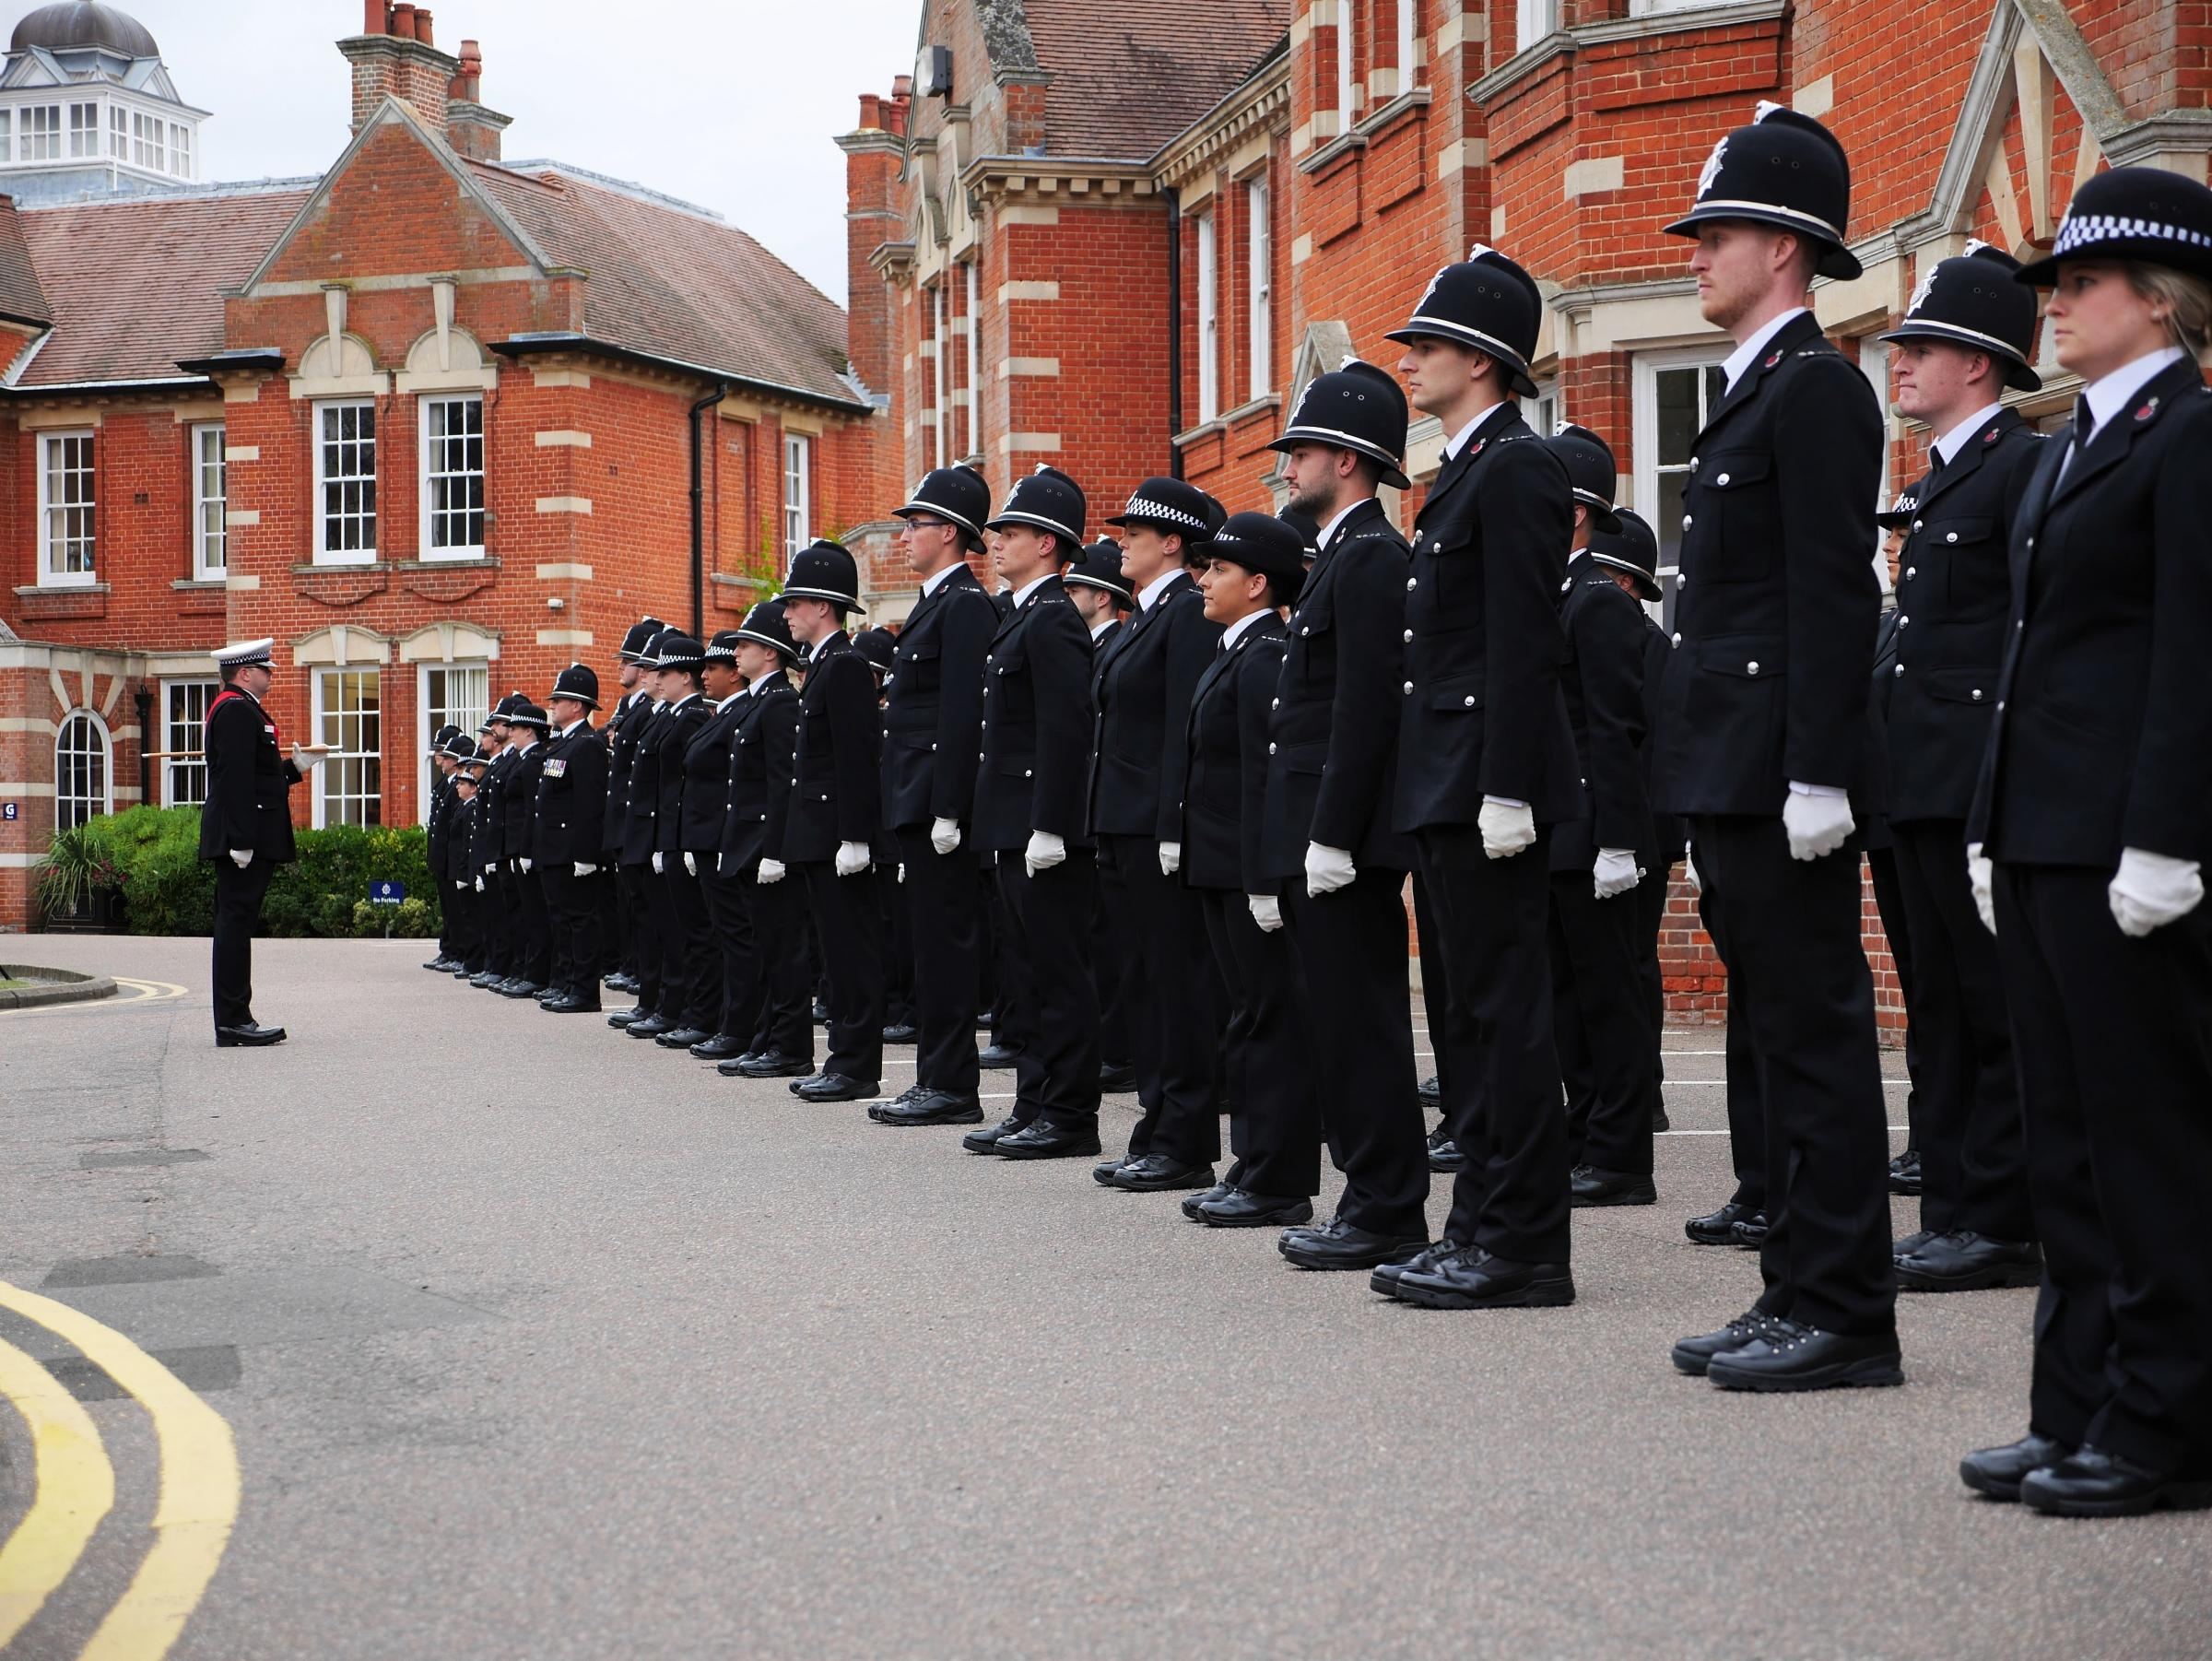 Essex Police welcomes 73 new officers to their team